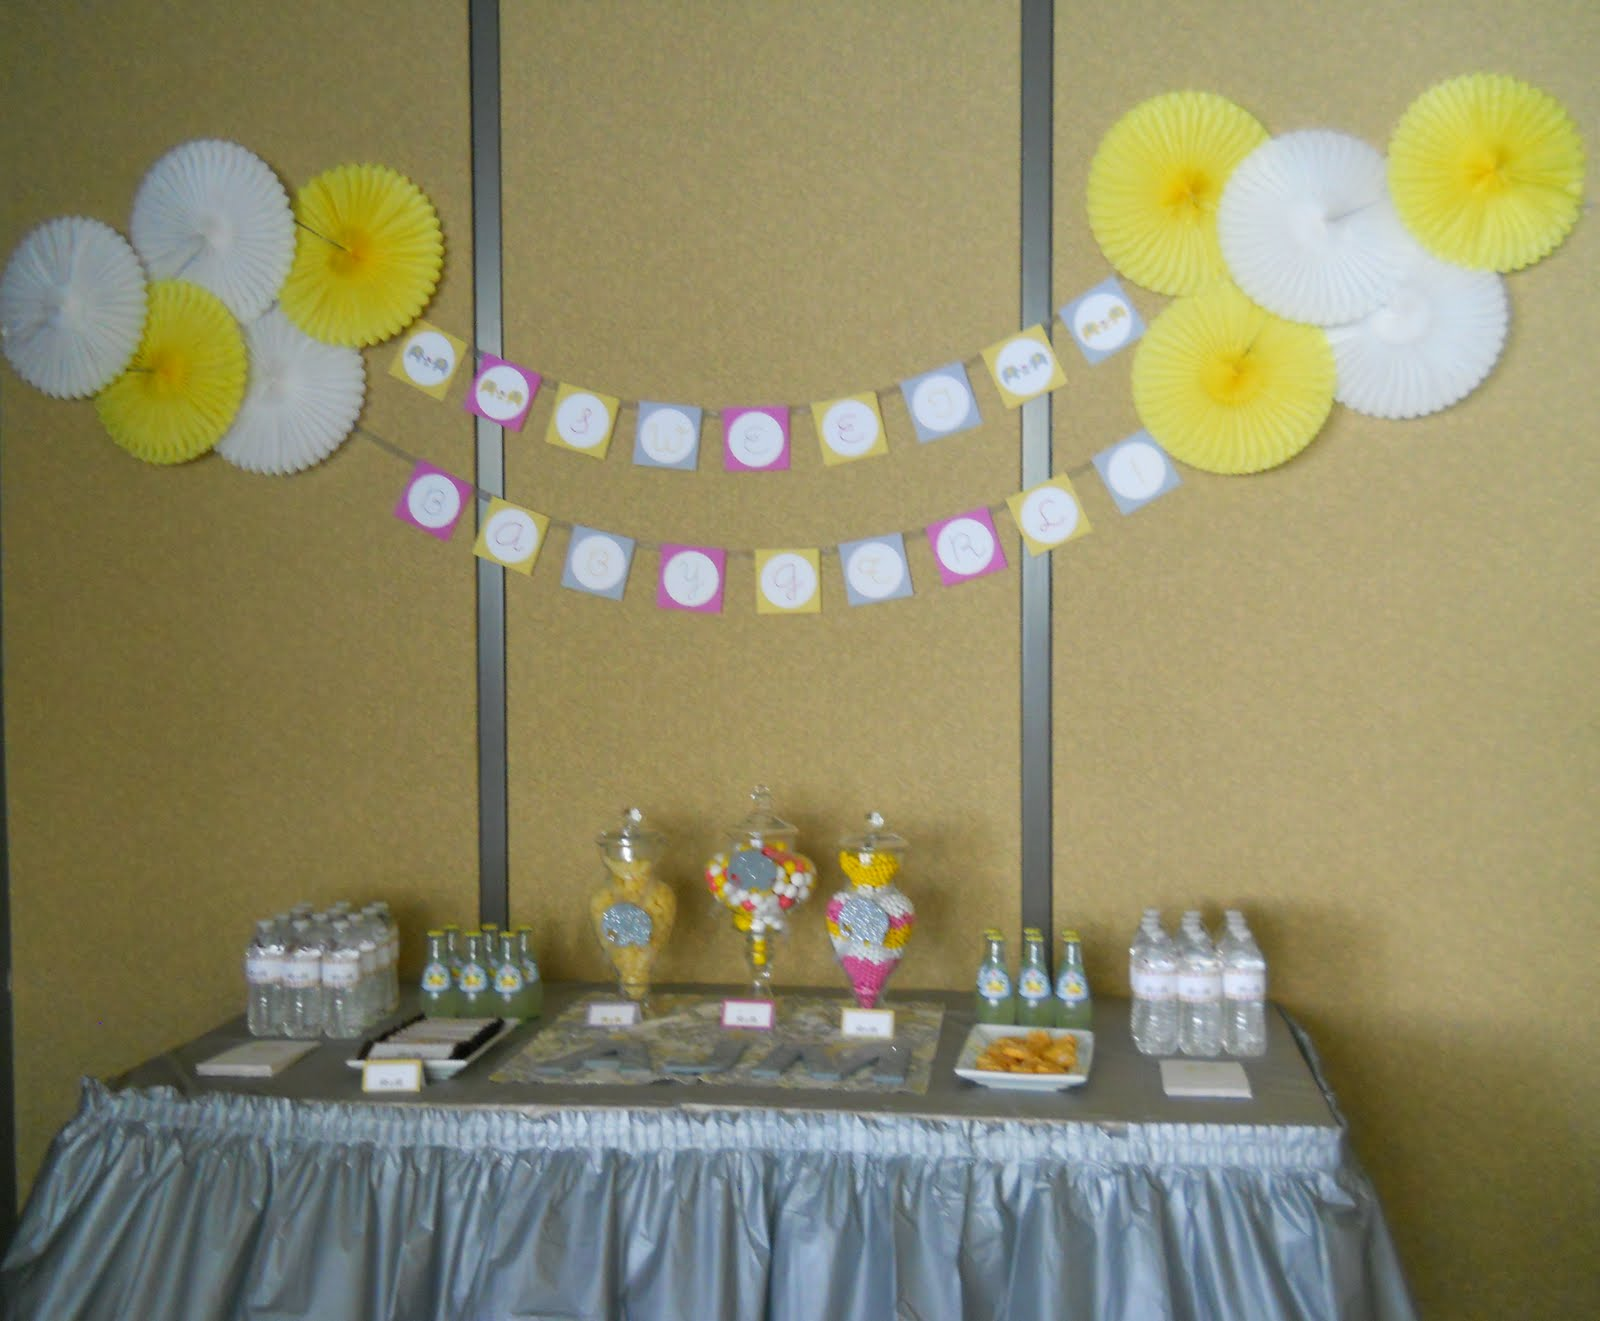 Baby shower decoration ideas interior home design for Baby shower decoration images